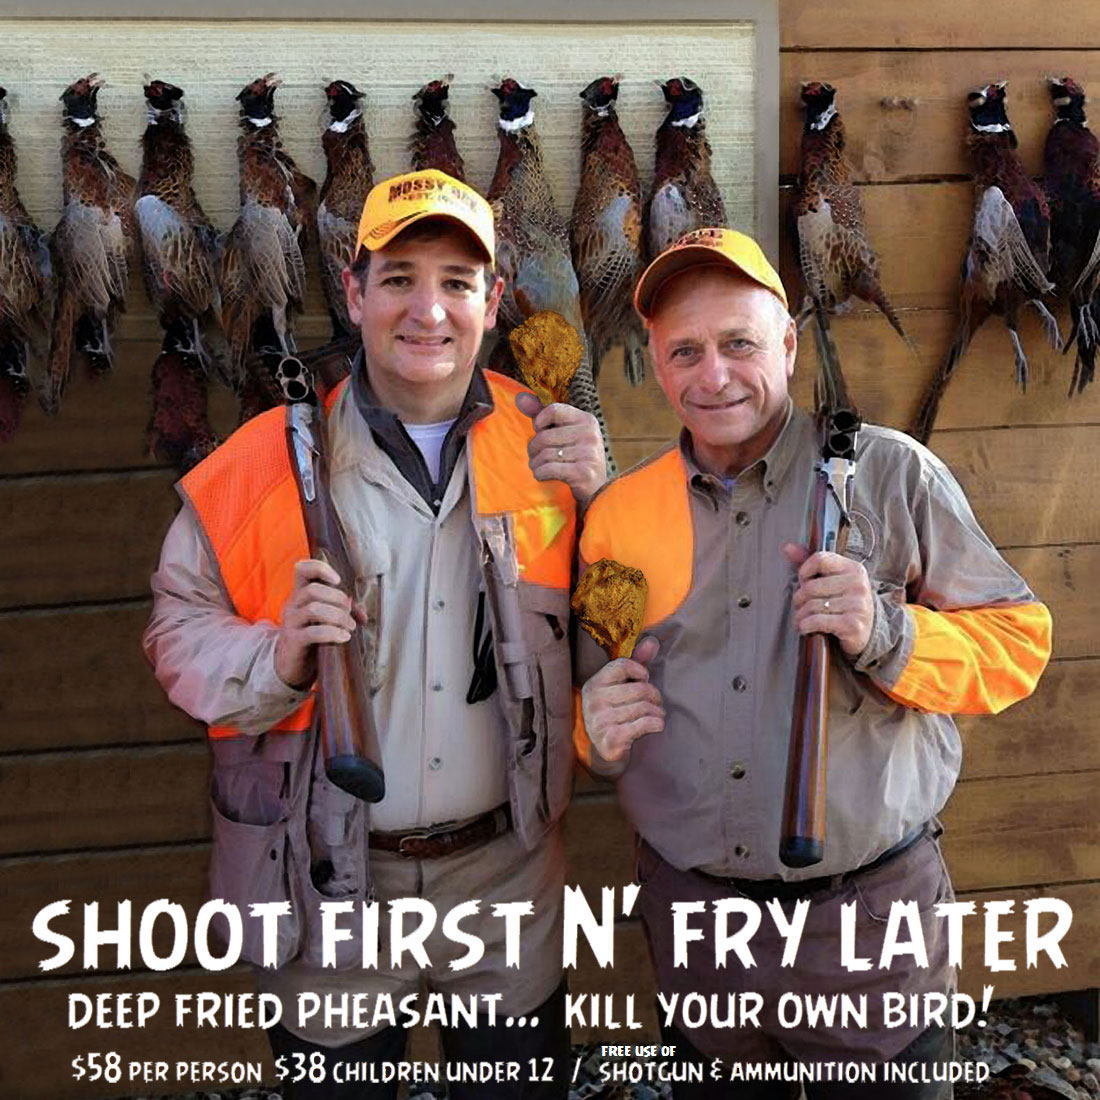 NRA's LEAD CHEF features Iowa's Shoot N' Fry Fried Pheasant